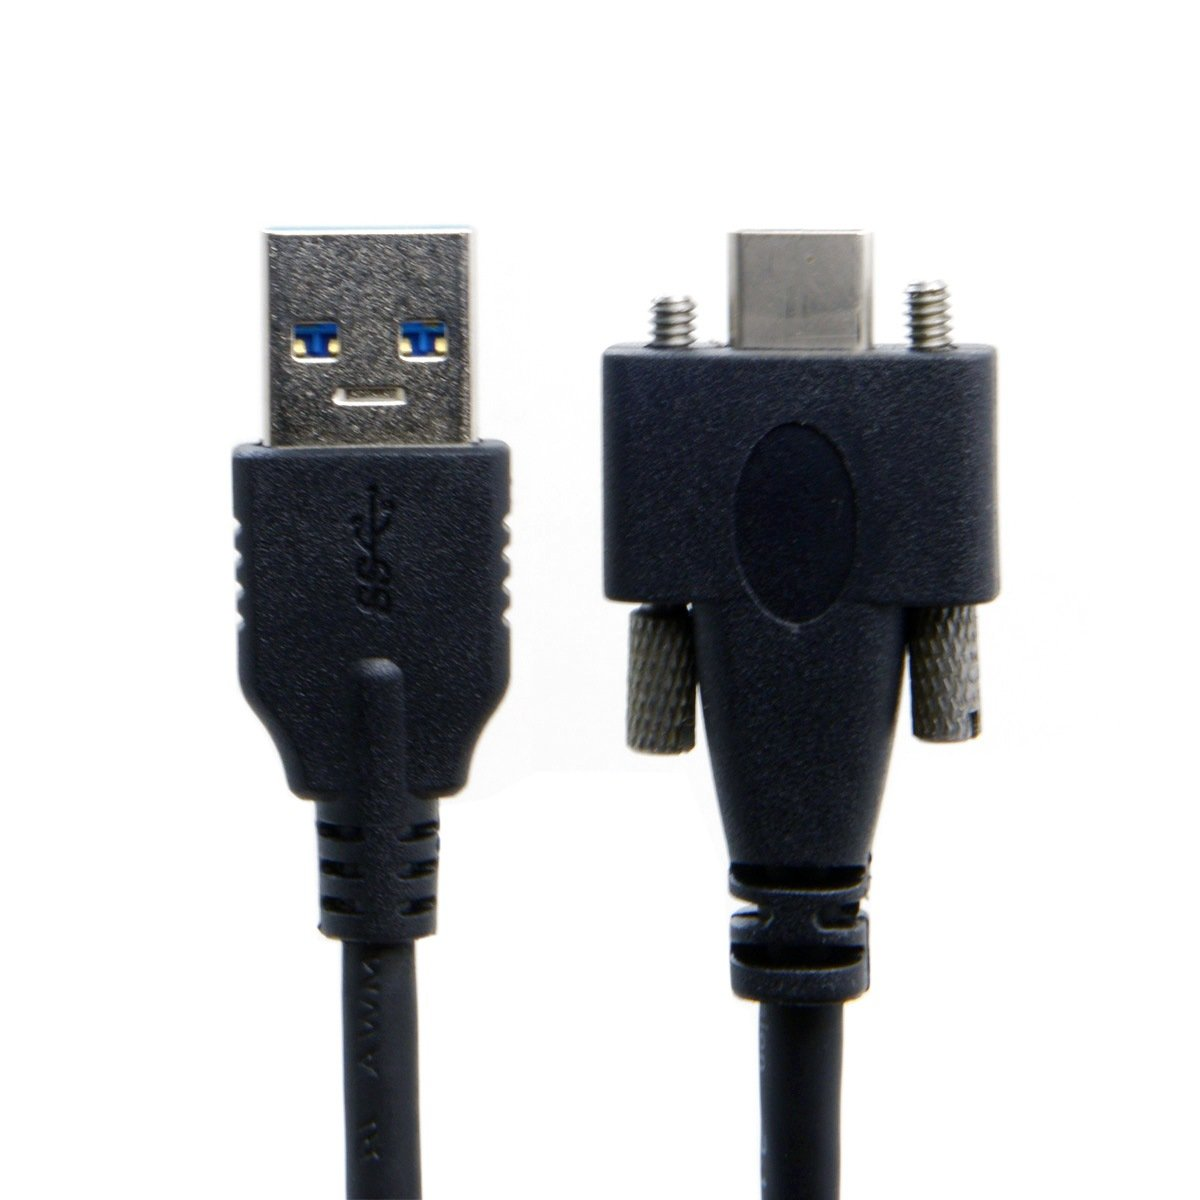 JSER USB 3.1 Type-C Dual Screw Locking to USB-C 10Gbps Data Cable 1.2m Panel Mount Type